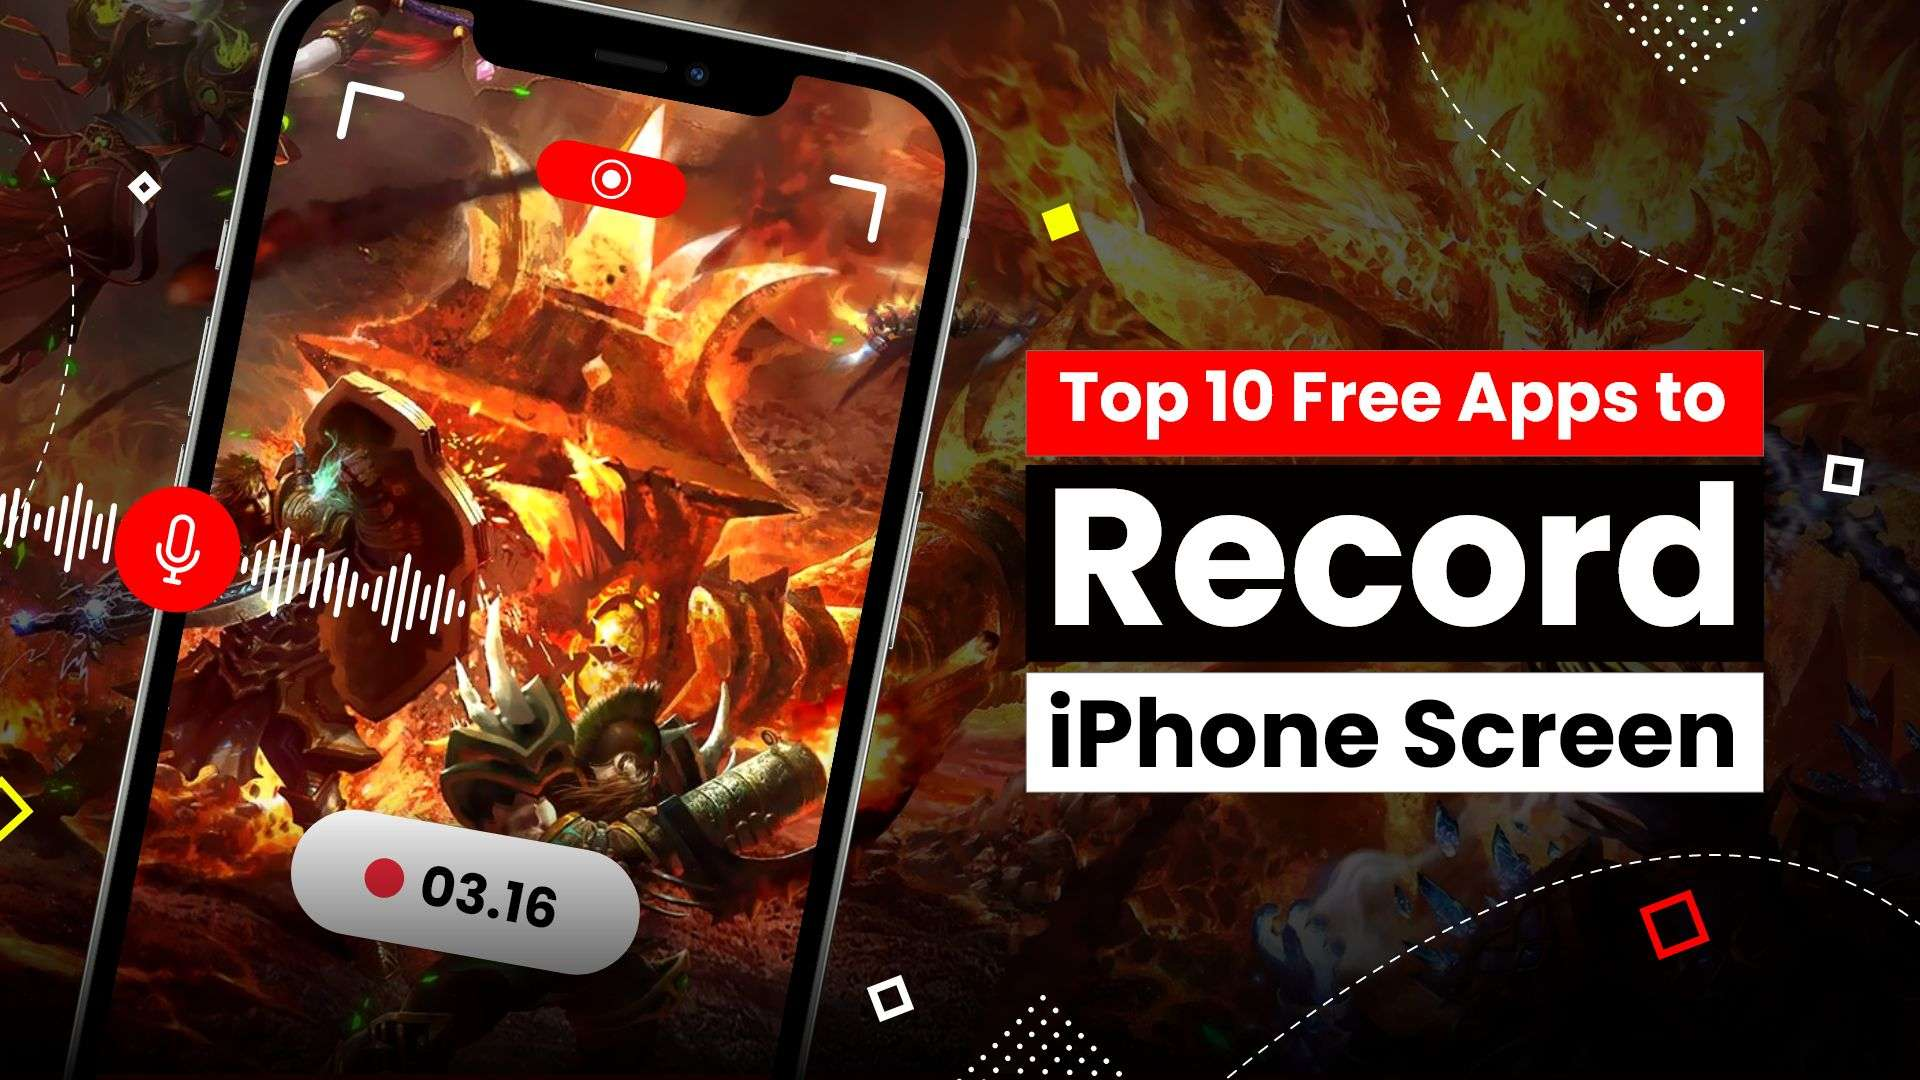 Apps to record iPhone screen